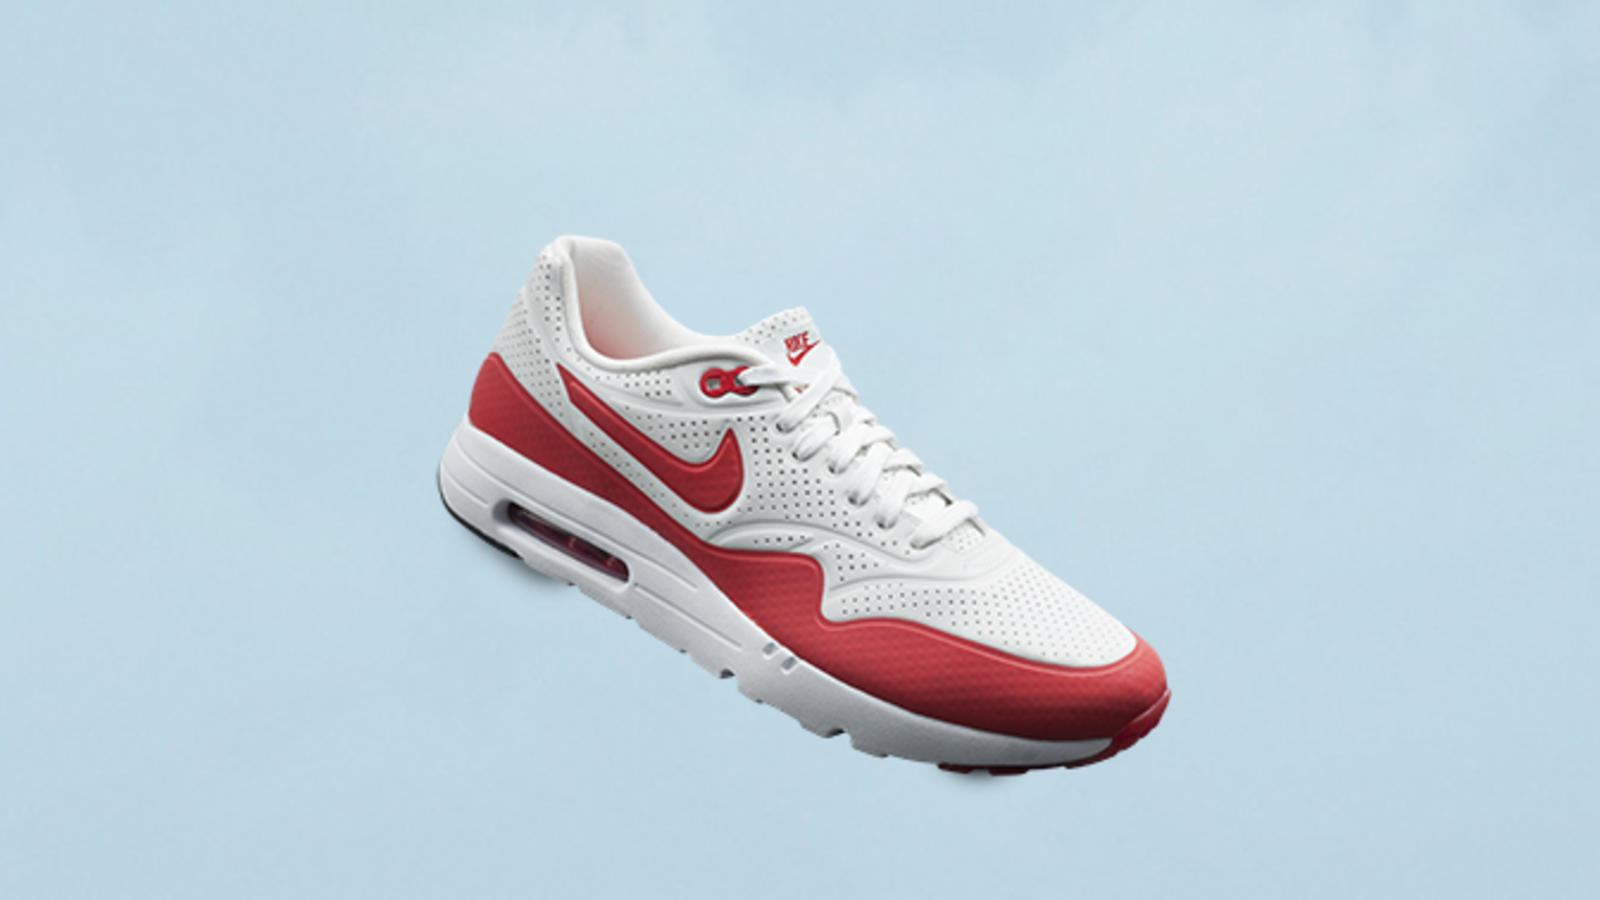 new arrival 61d75 b87bd Lighten Up 13. AIR MAX 1 ULTRA MOIRE 2015: Arguably the most innovative  iteration of the Air Max 1, the Air Max 1 Ultra updated the the original  from top to ...